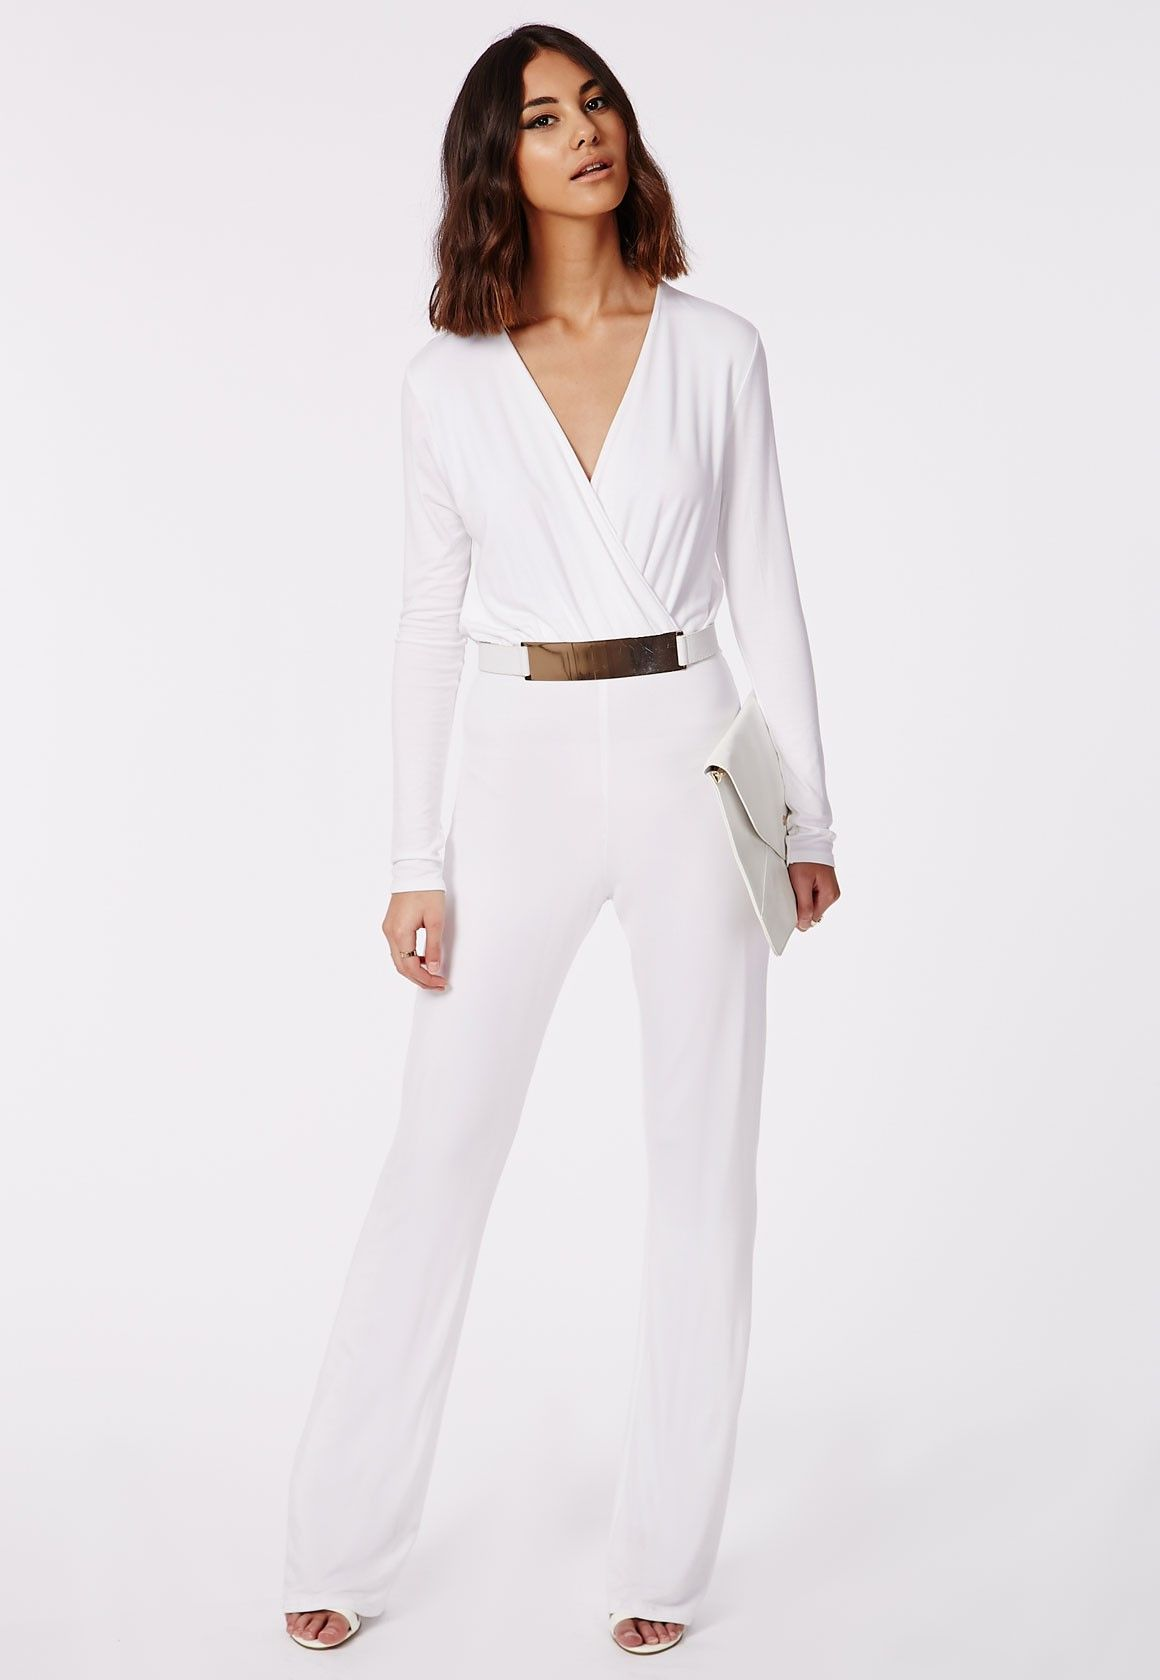 Cute Long Sleeve Jumpsuit   tenuestyle   Awesome Long Sleeve ... 41794eb8cb